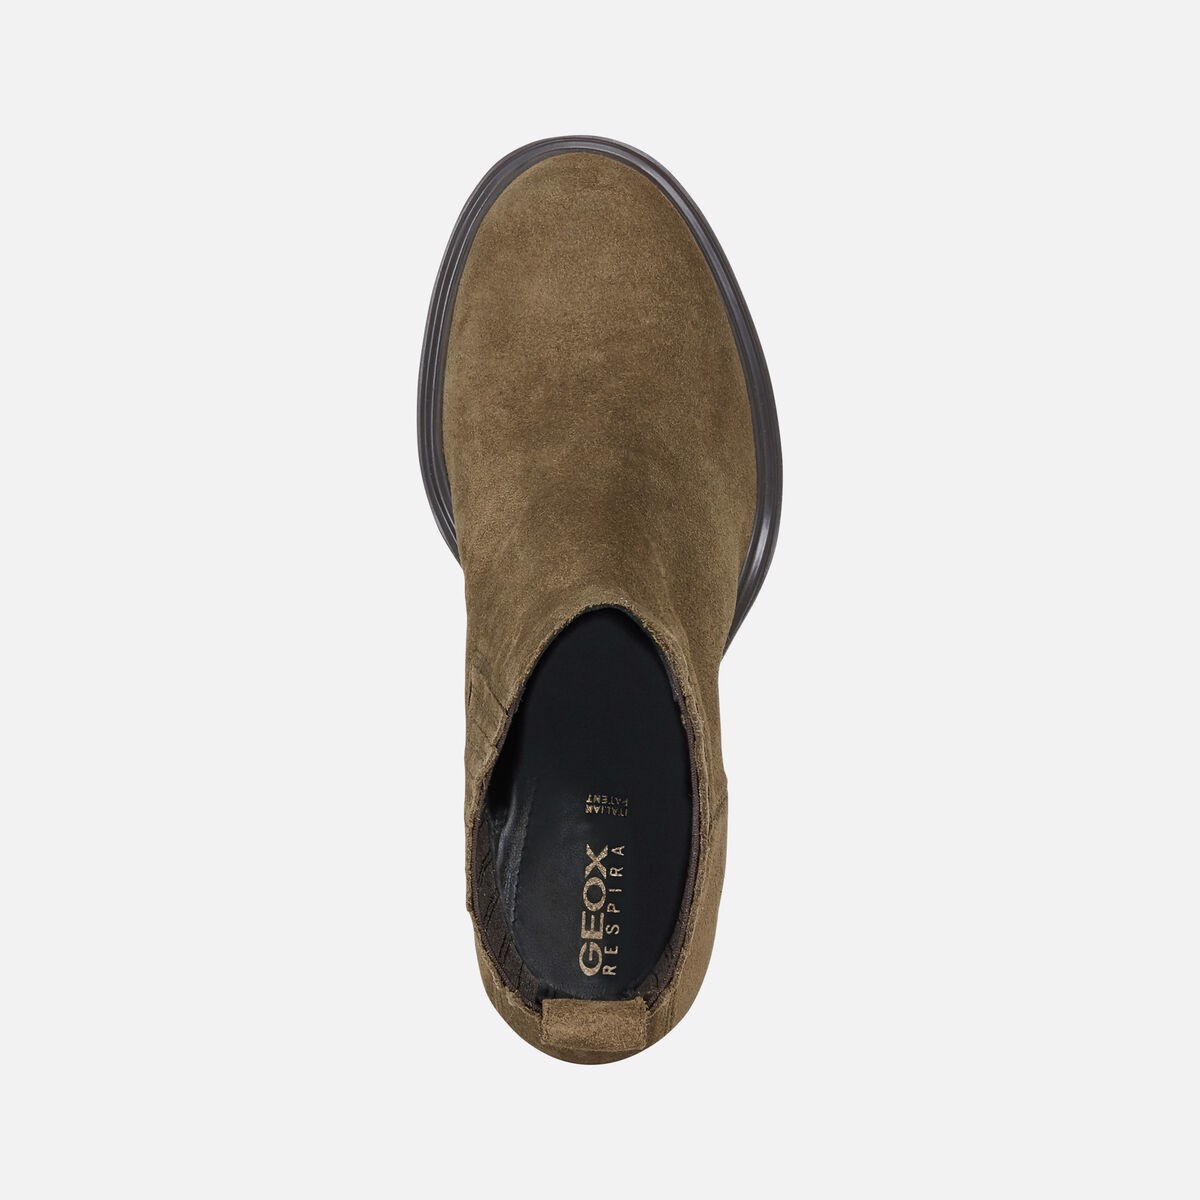 Giày Boots Nữ Geox D Salice High B - Oil.Suede